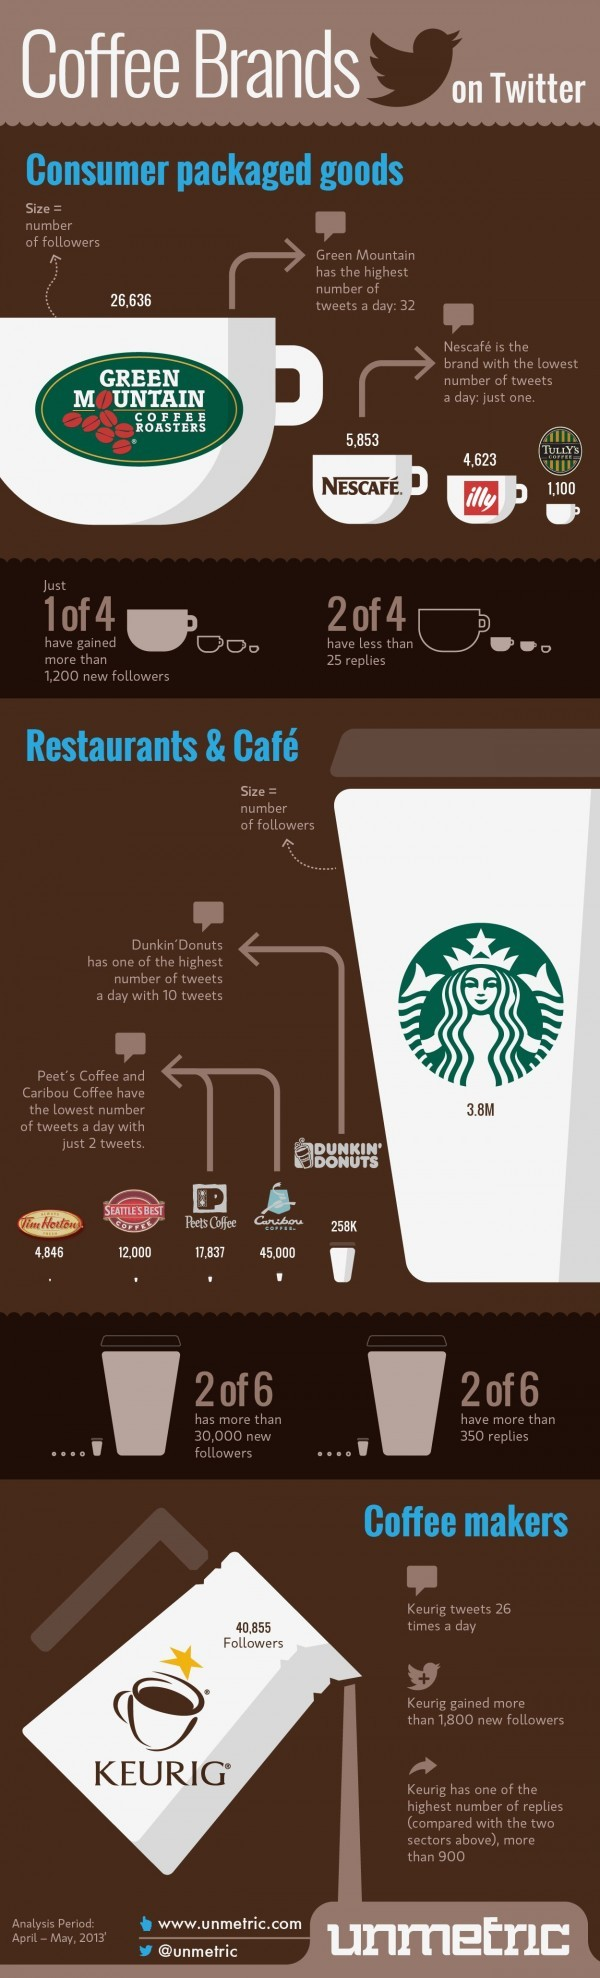 Coffee-Brands-Twitter-infographic